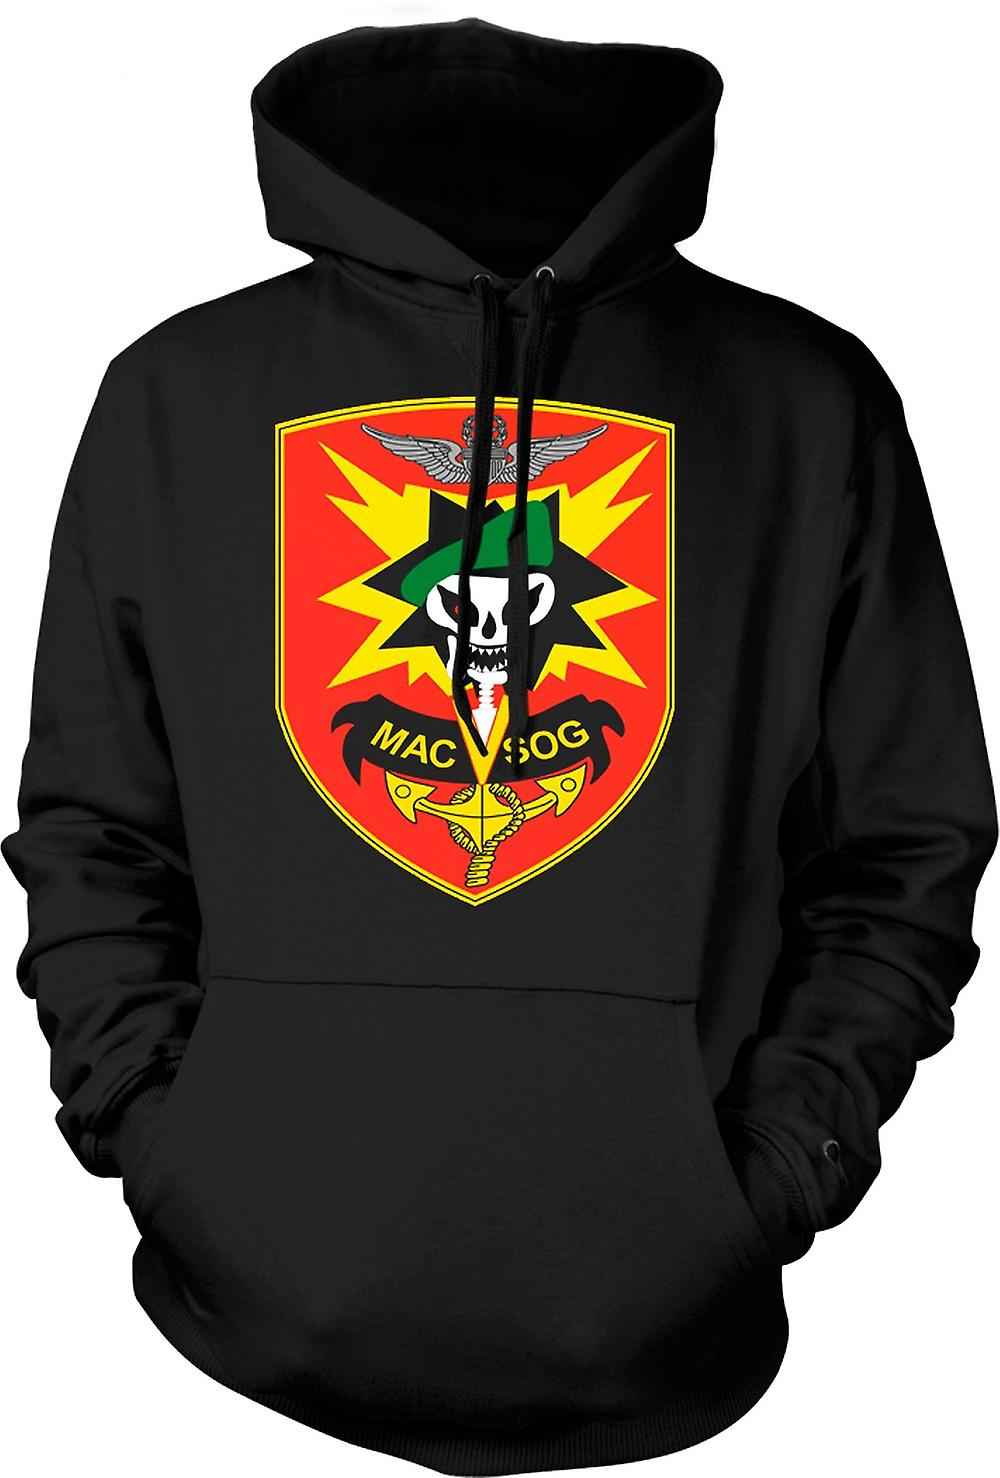 Mens Hoodie - MACV-SOG Special Forces Badge